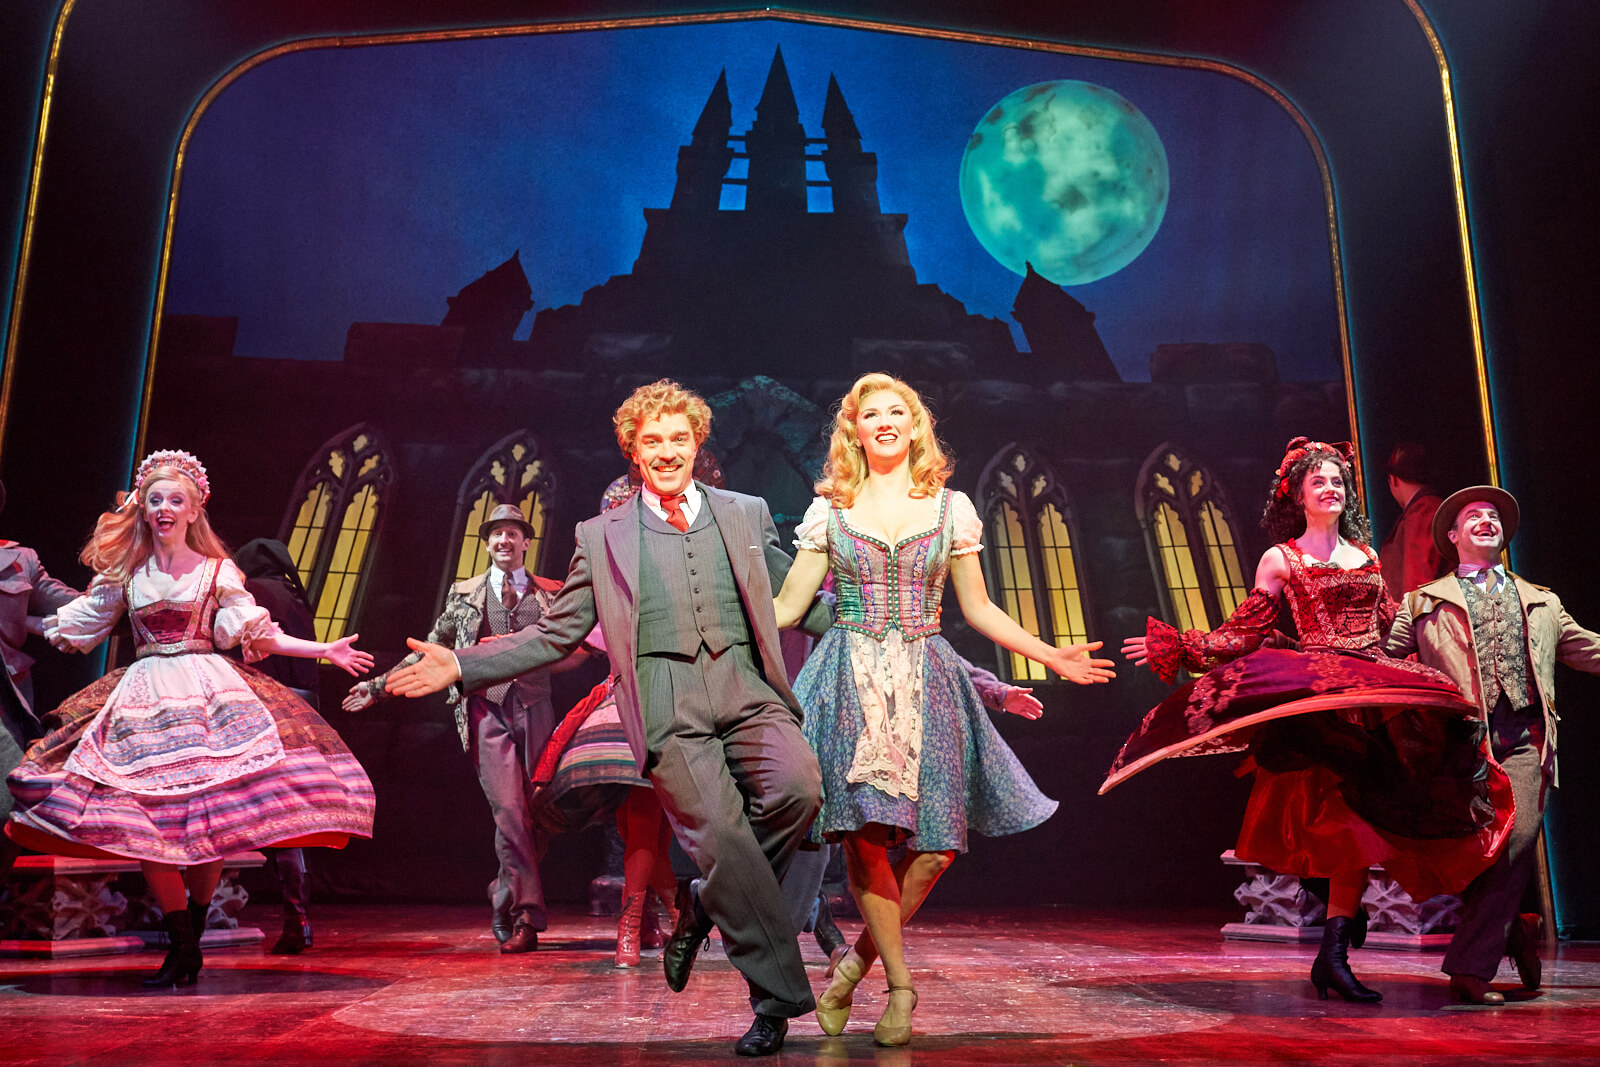 """Dr. Frankenstein (Hadley Fraser) and Inga (Summer Strallen) happily dancing under a full moon in front of the castle with The Villagers to the song """"Transylvania Mania"""" in Young Frankenstein West End."""